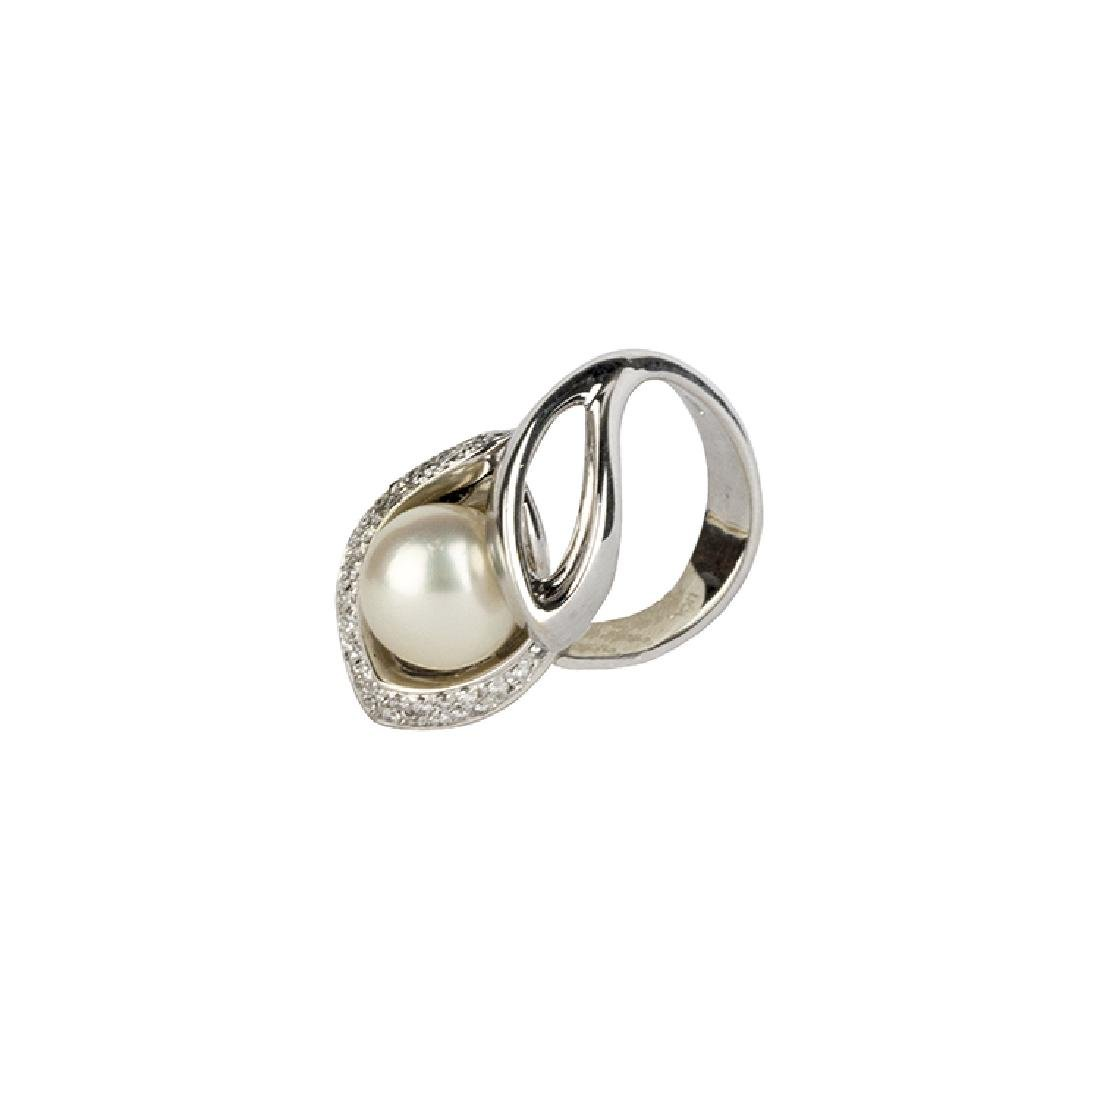 Ring with one pearl